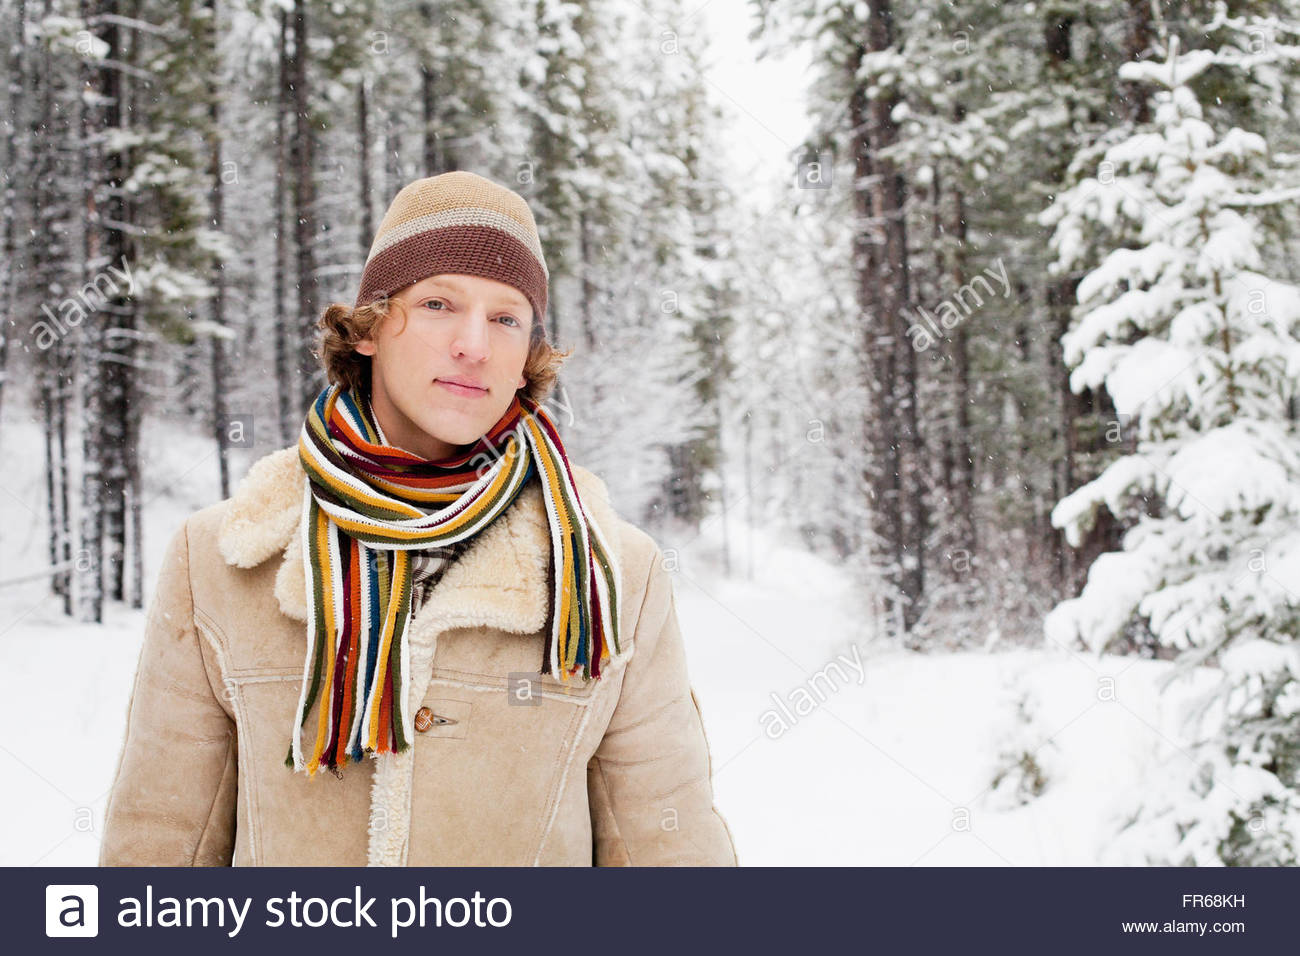 young man enjoying the wintery outdoors - Stock Image